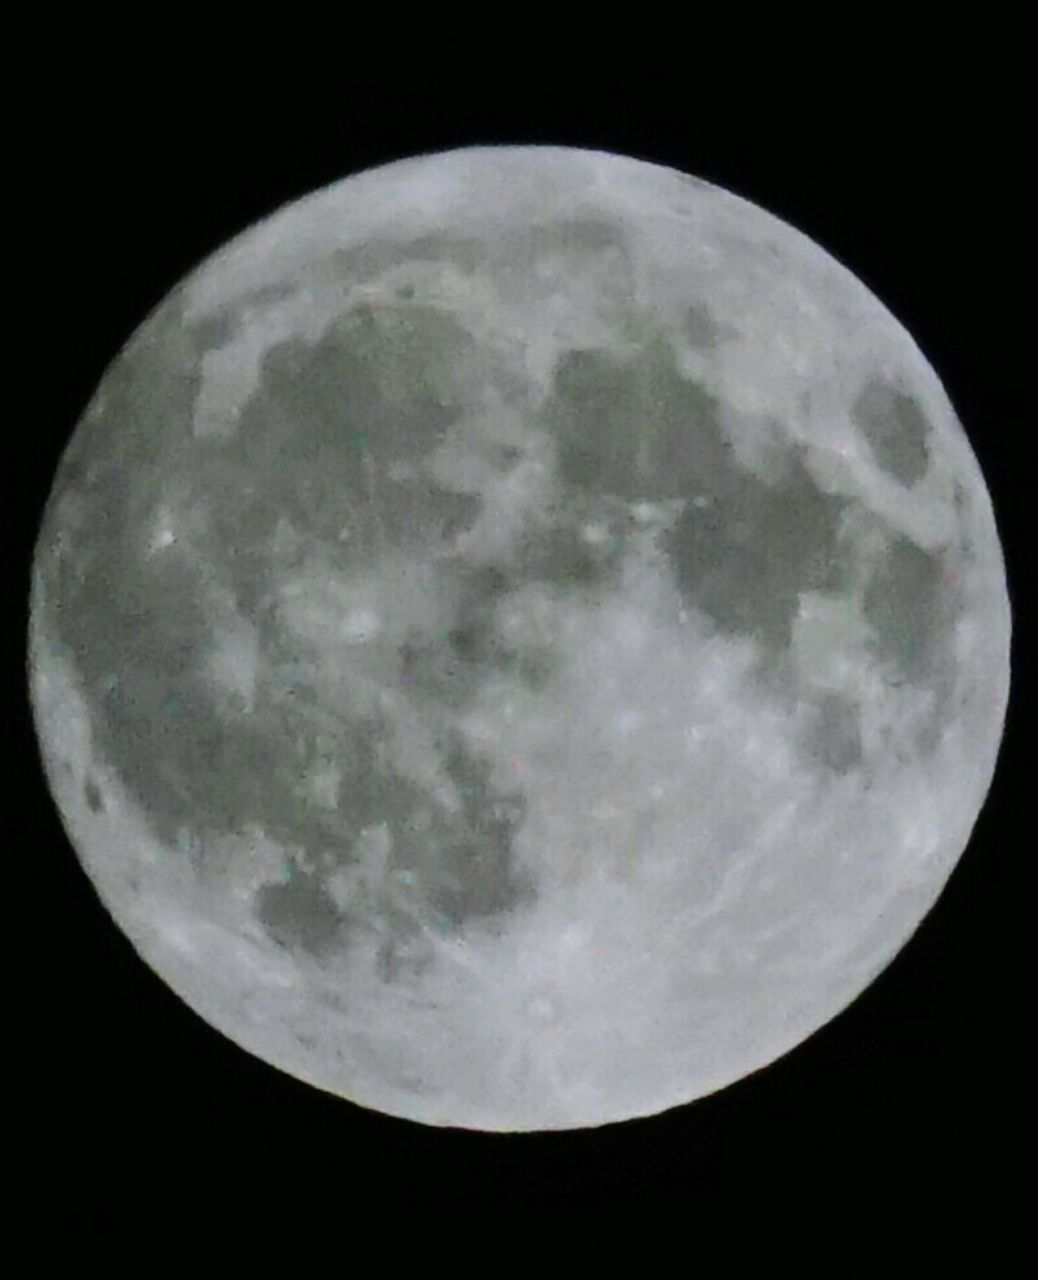 moon, night, full moon, moon surface, planetary moon, astronomy, beauty in nature, sky, nature, scenics, tranquility, no people, space exploration, space, close-up, outdoors, satellite view